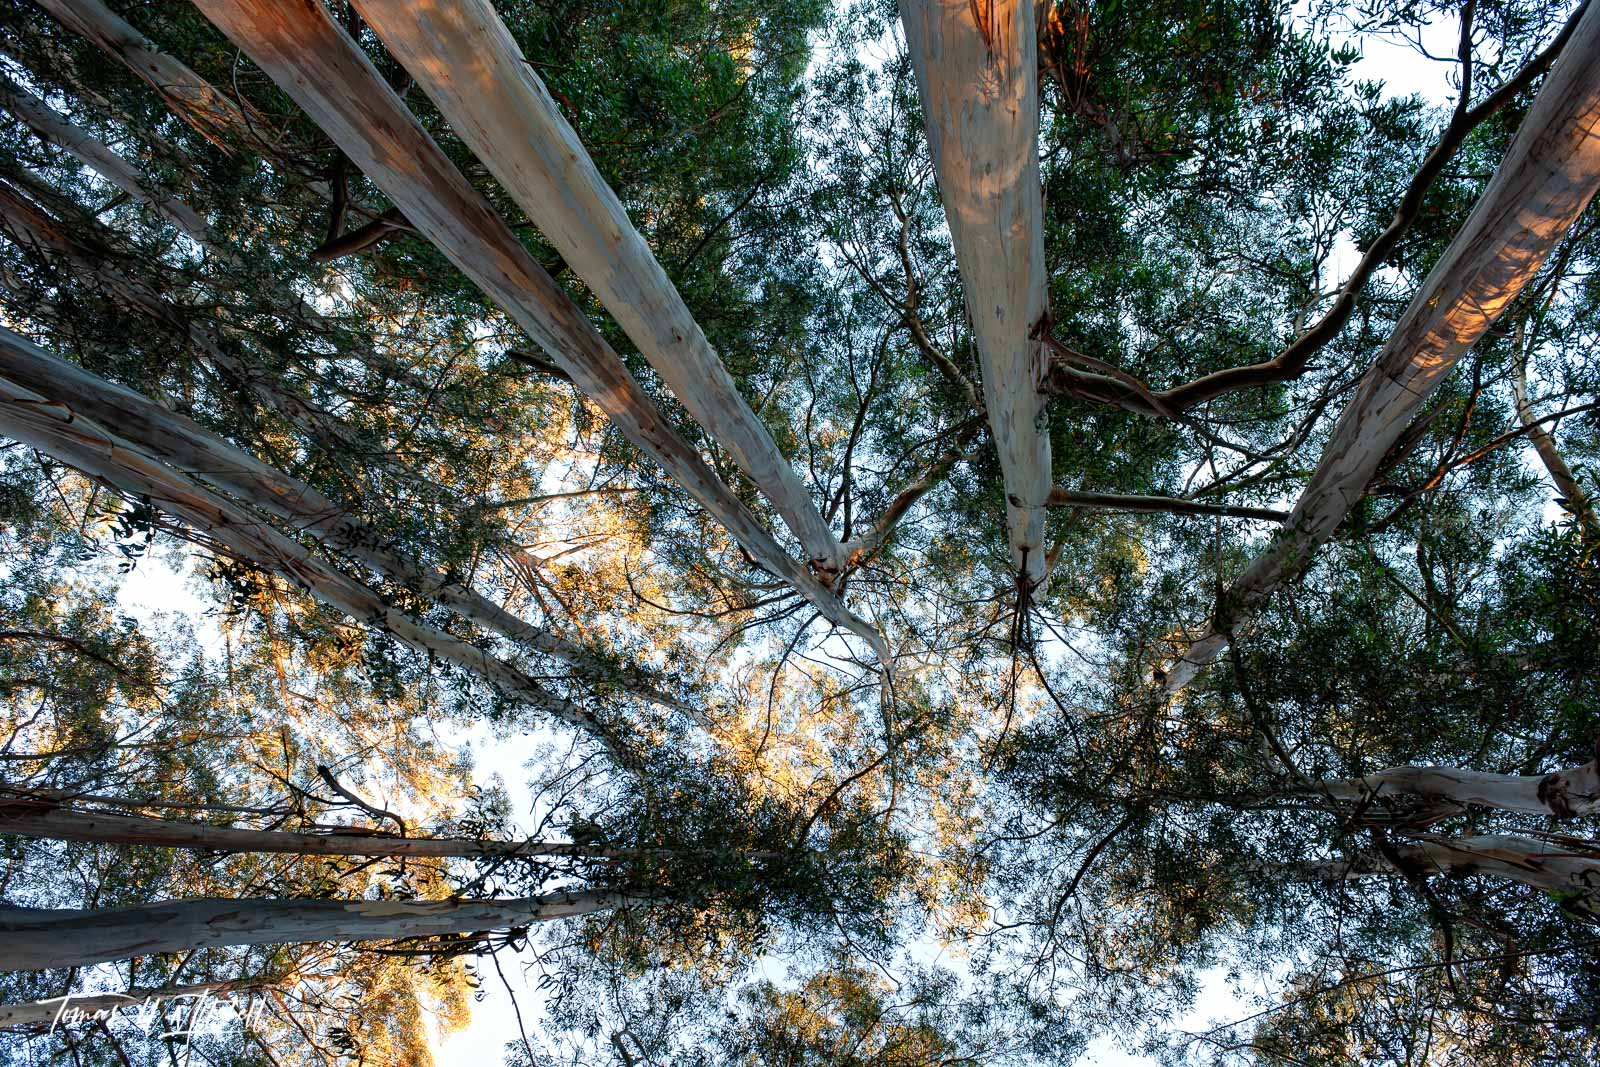 limited edition, fine art prints, trees, sky, photograph, monterey california, forest, morning, leaves, sky, eucalyptus,, photo